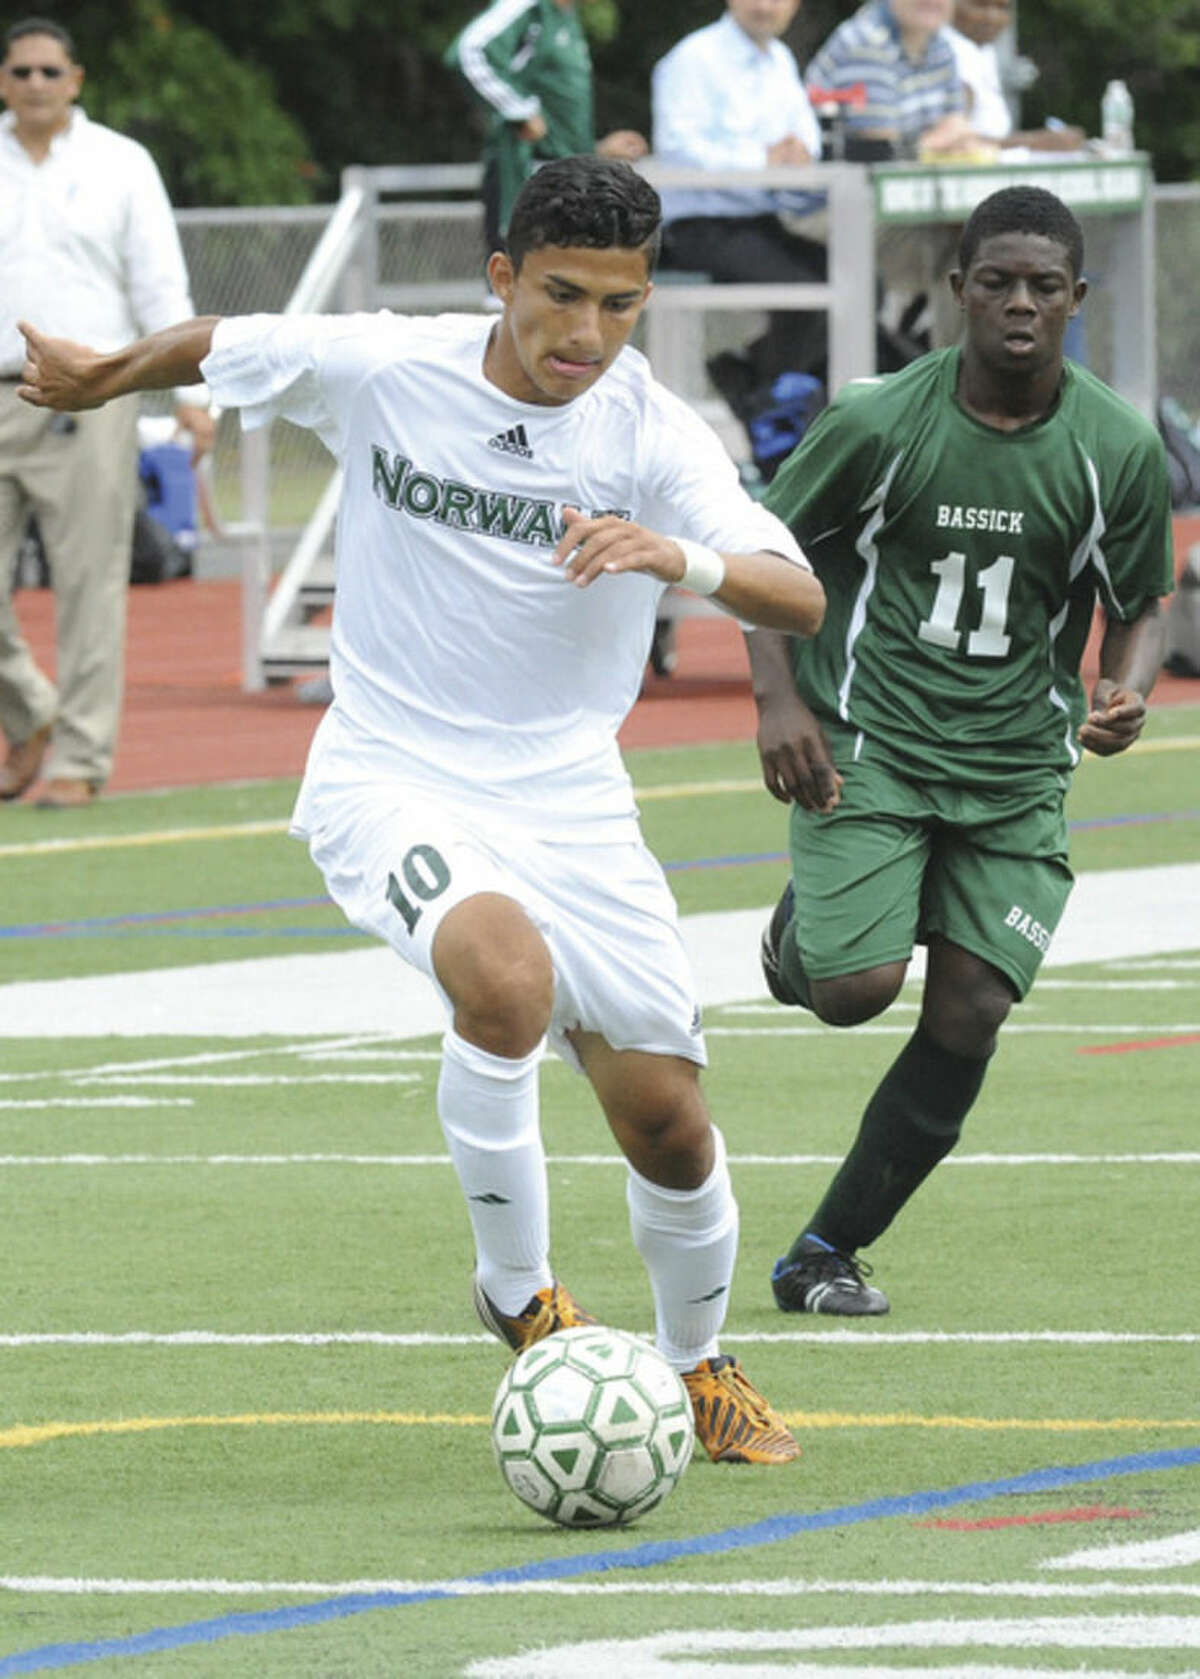 Hour photo/Matthew Vinci Norwalk's Patrick Barrantes, front, dribbles past Bassick's Simon McIntyre during Tuesday's game at Norwalk High. Barrantes scored three first half goals to help the Bears to their first win of the season.